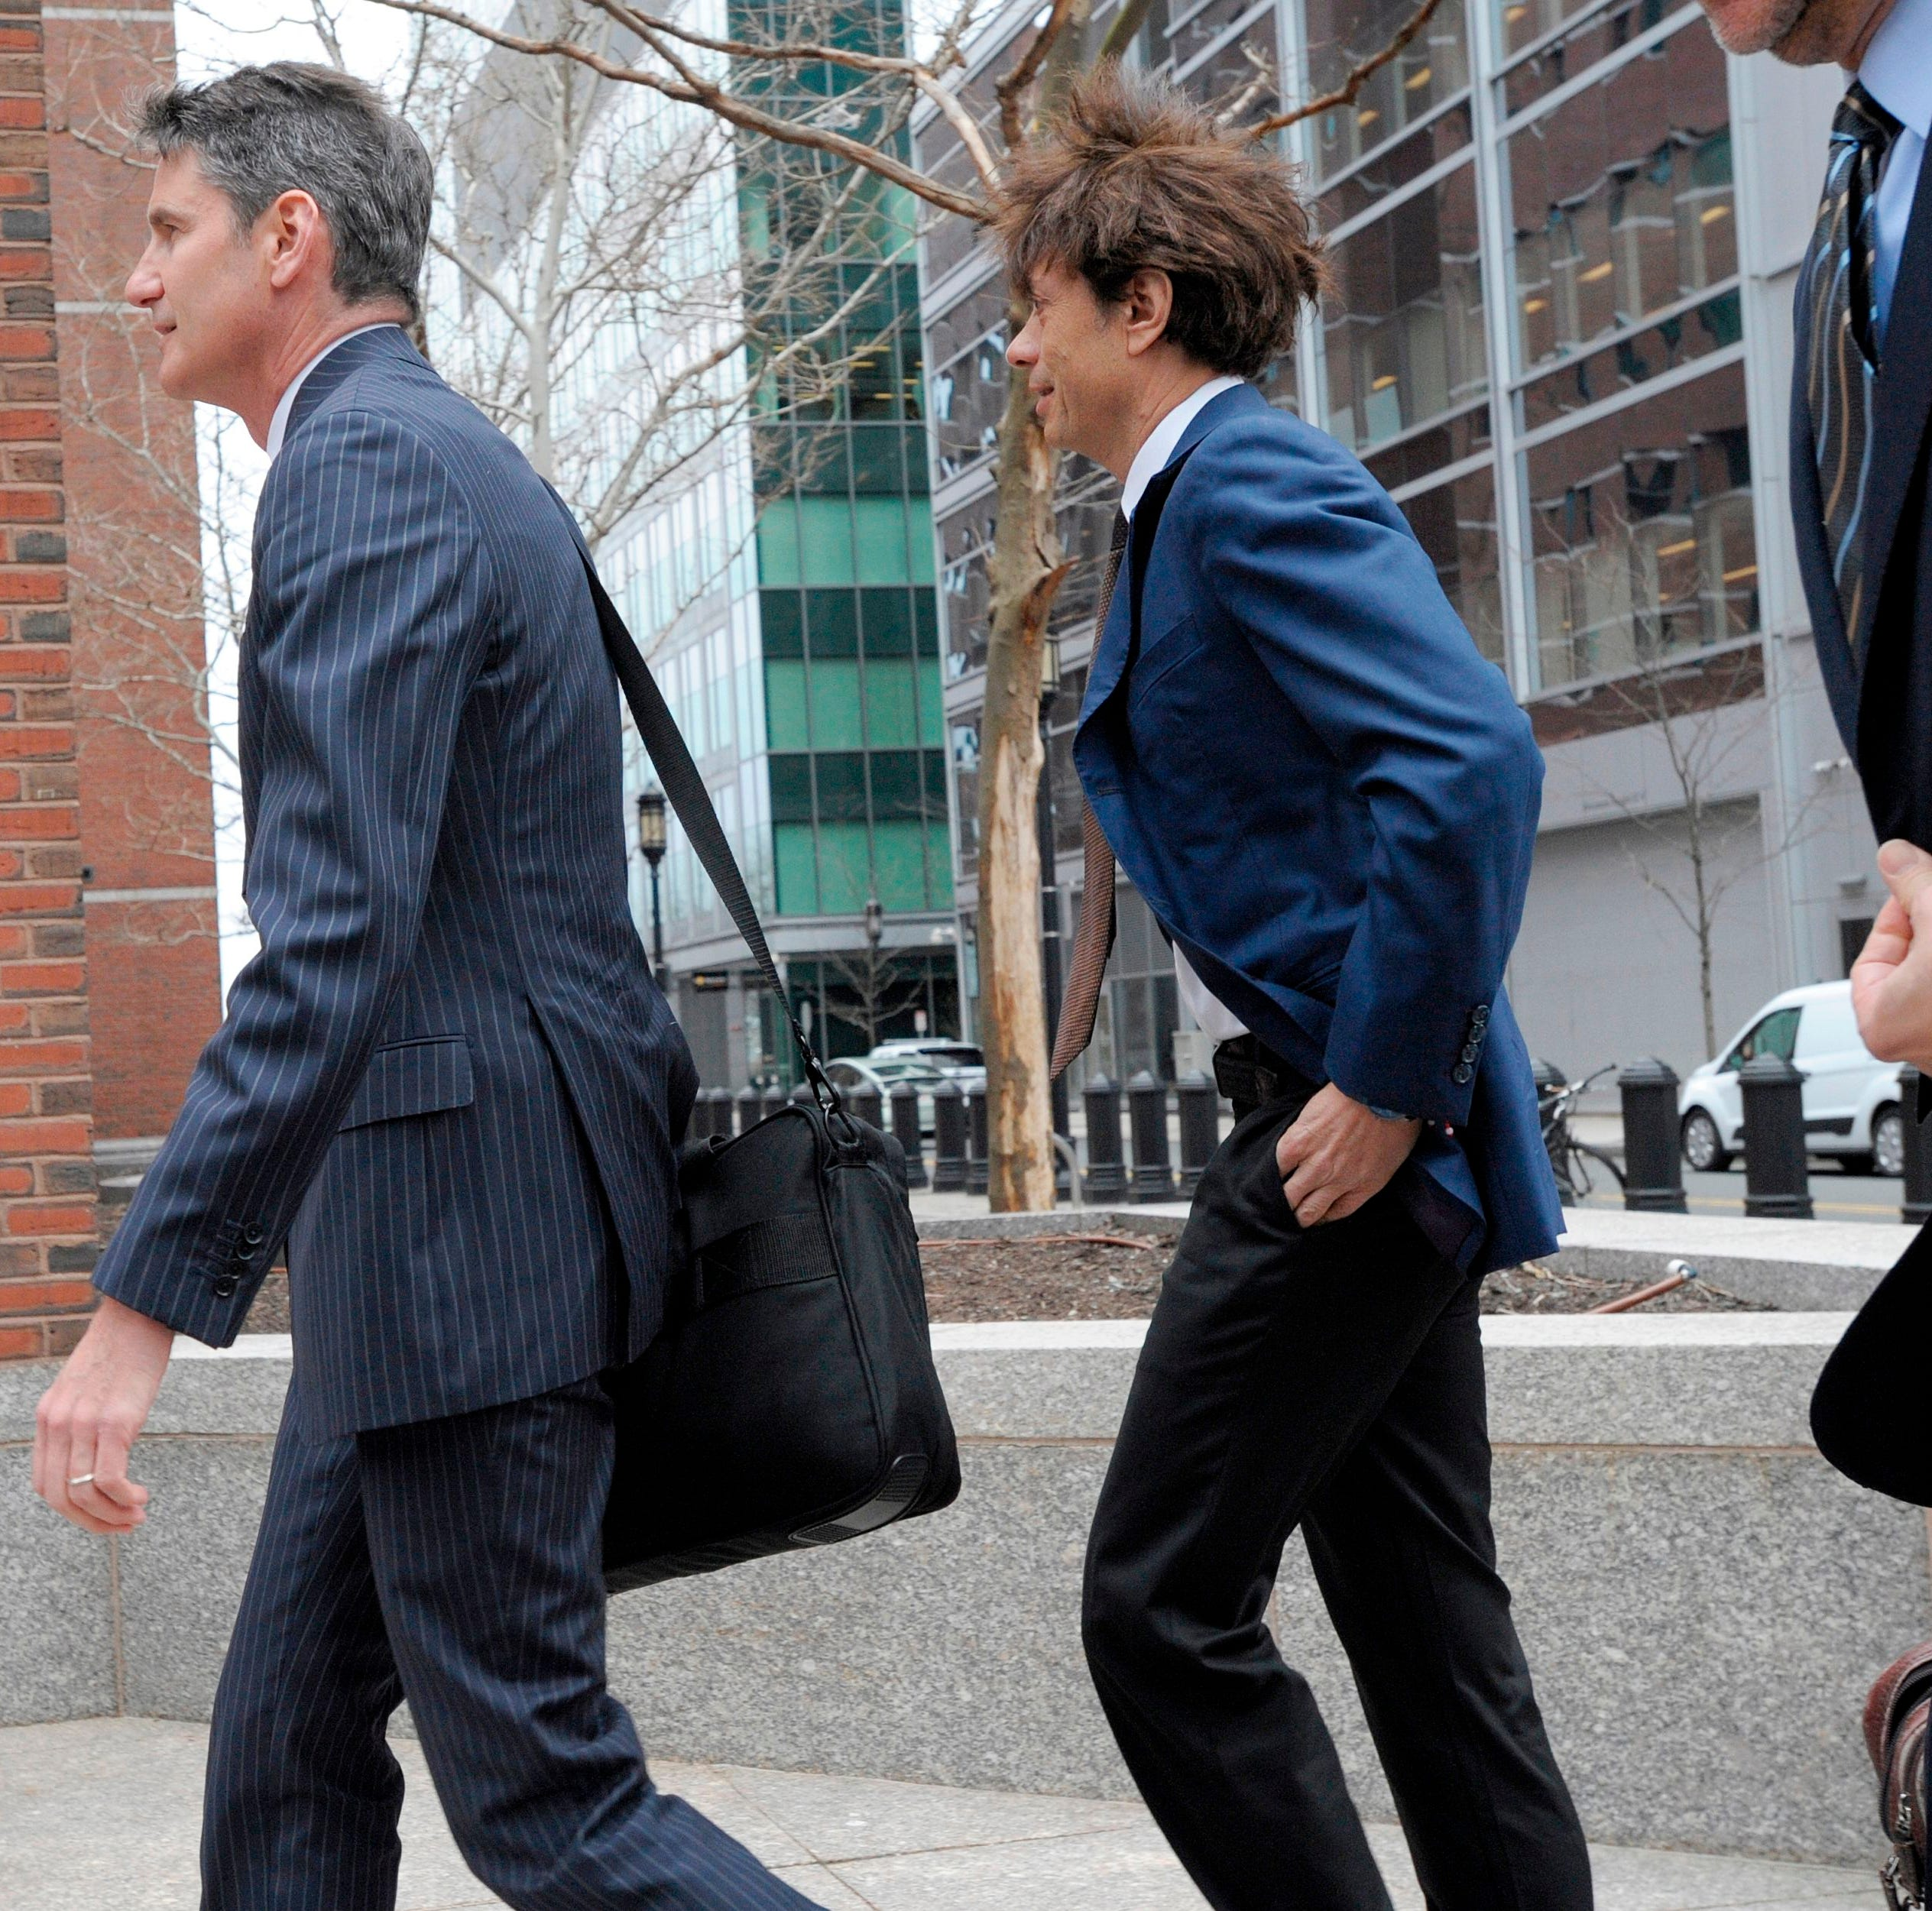 Napa vineyard owner, NYC attorney plead guilty in college admissions ACT, SAT cheating scandal